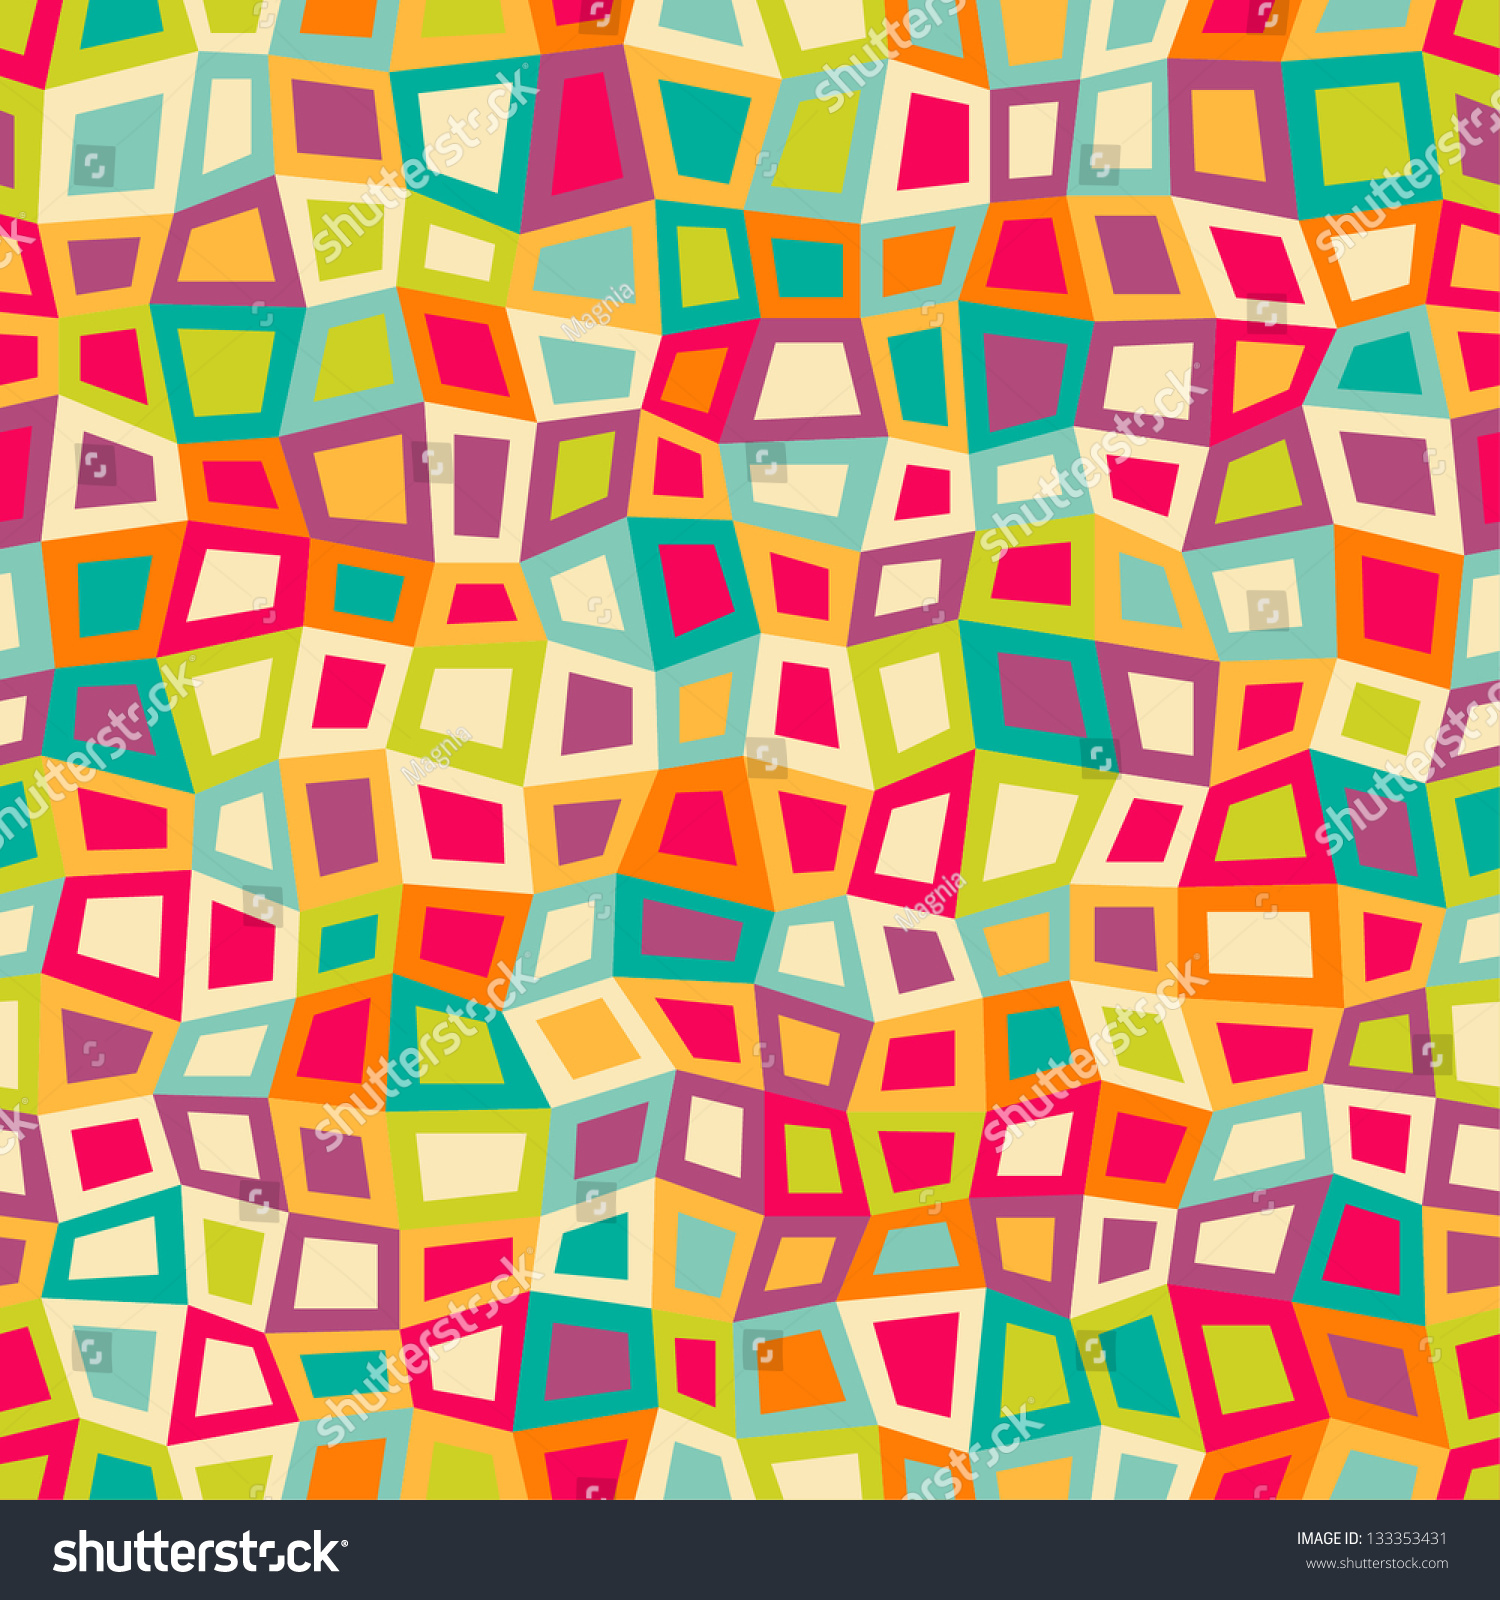 Seamless Geometric Pattern With Bright Color Squares